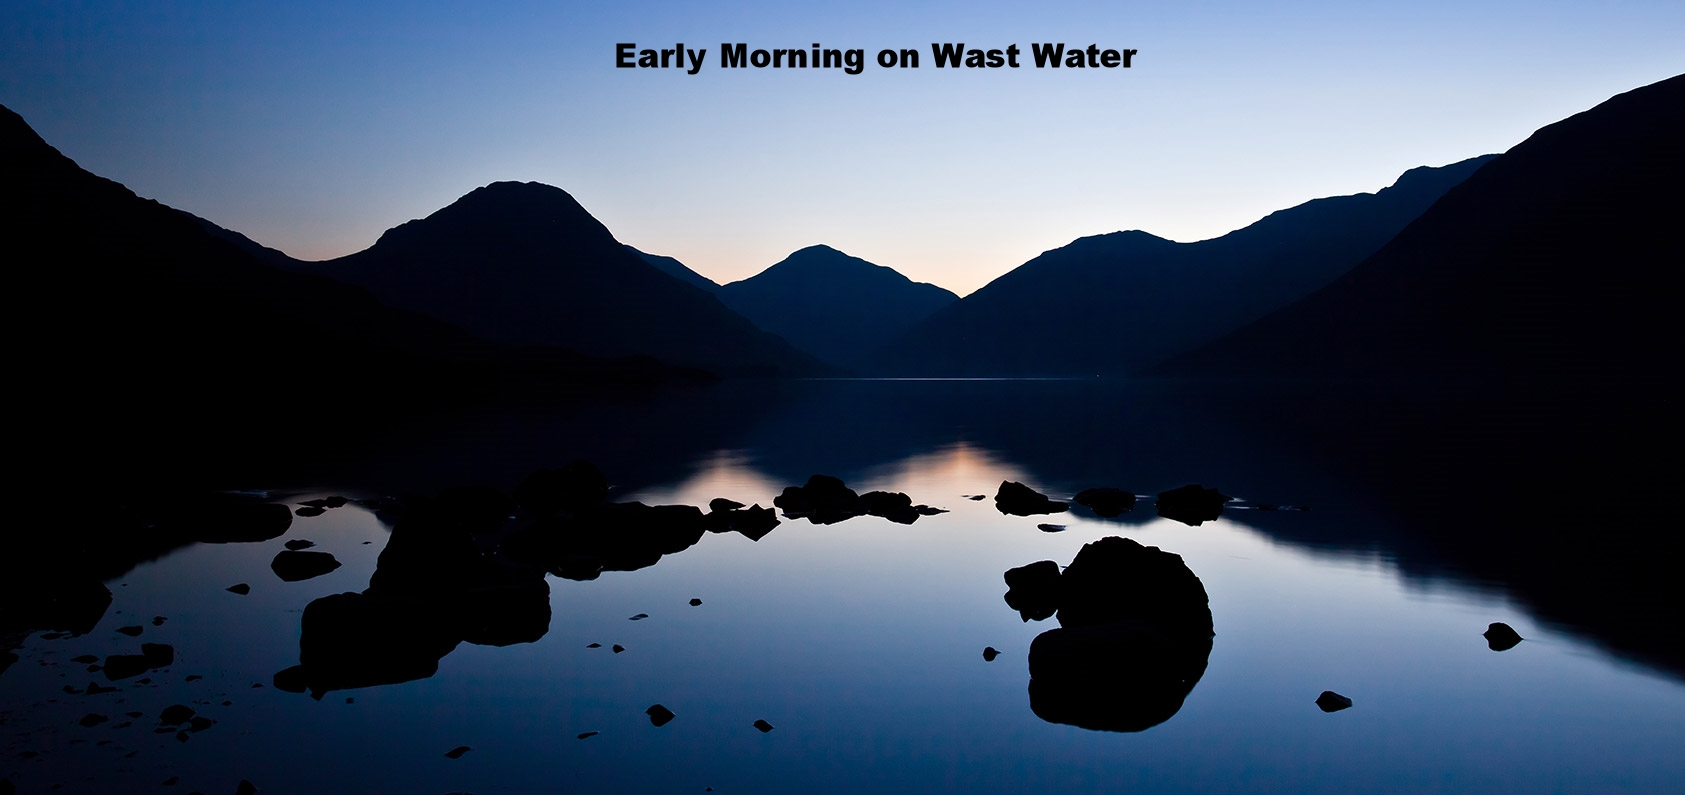 Wastwater-Sunrise.jpg